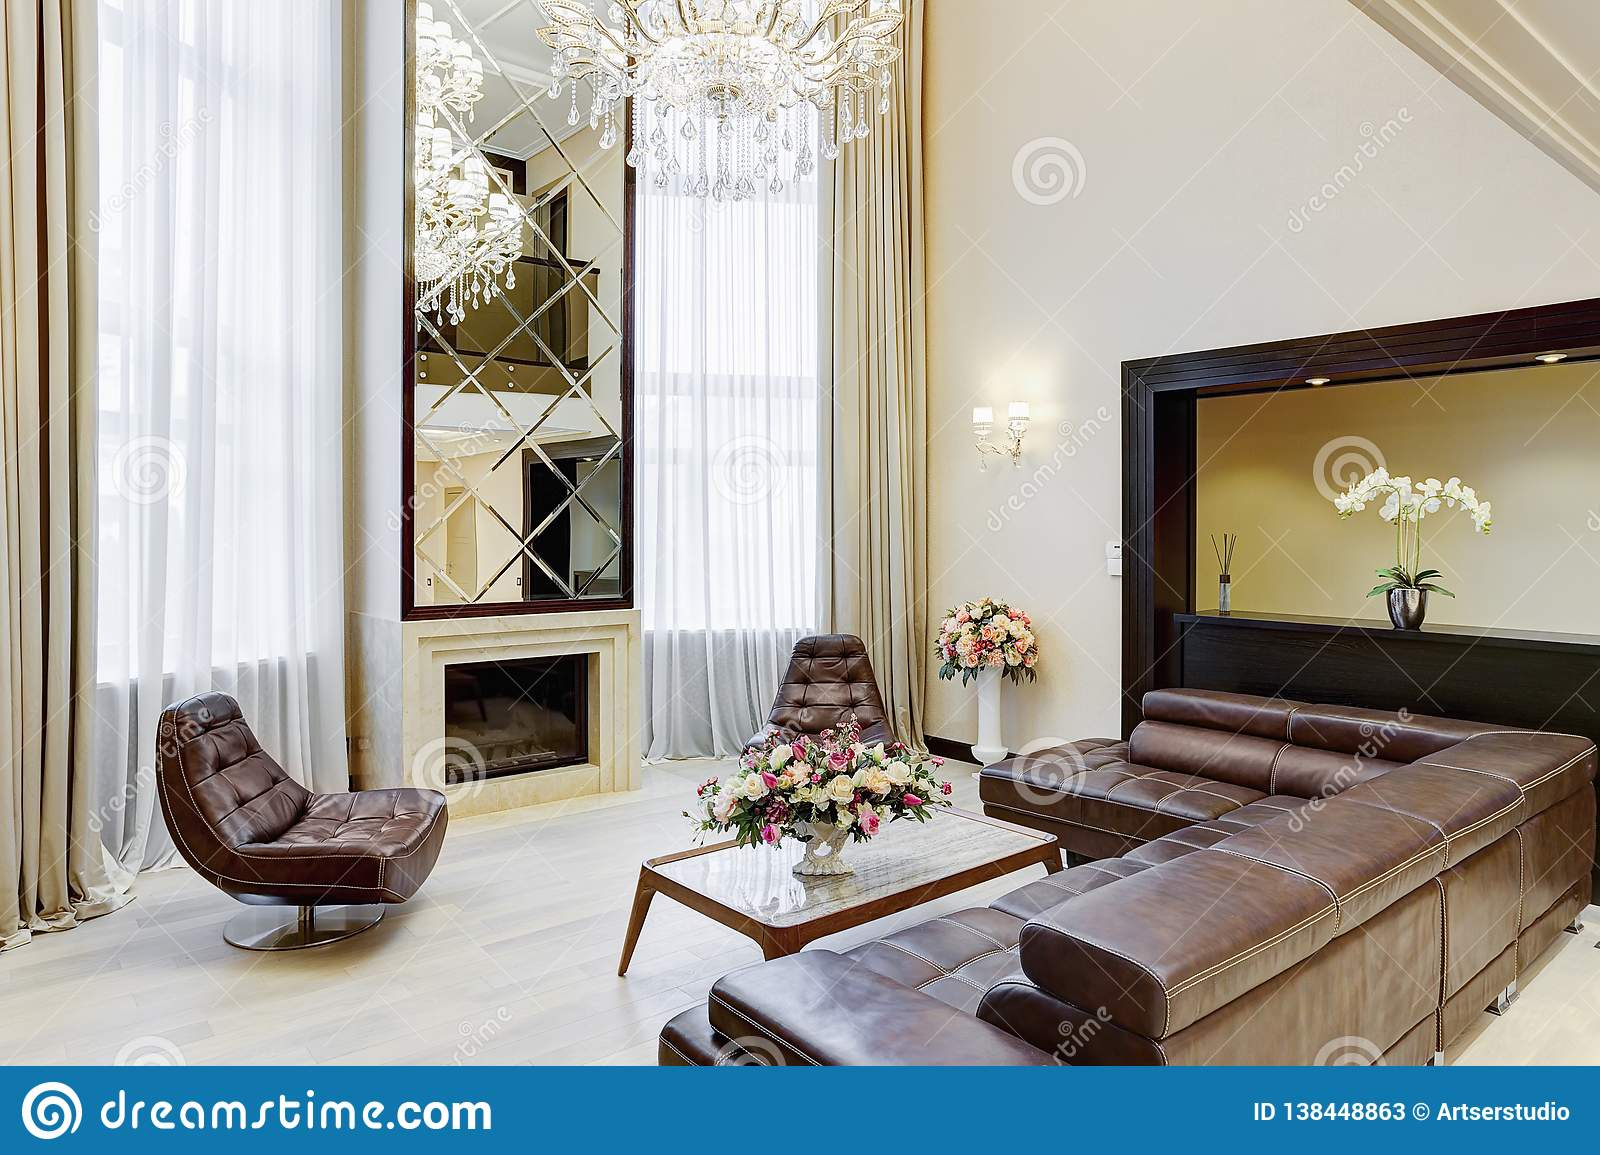 Stylish Living Room With Fireplace And Mirror Over. Stock Image ...